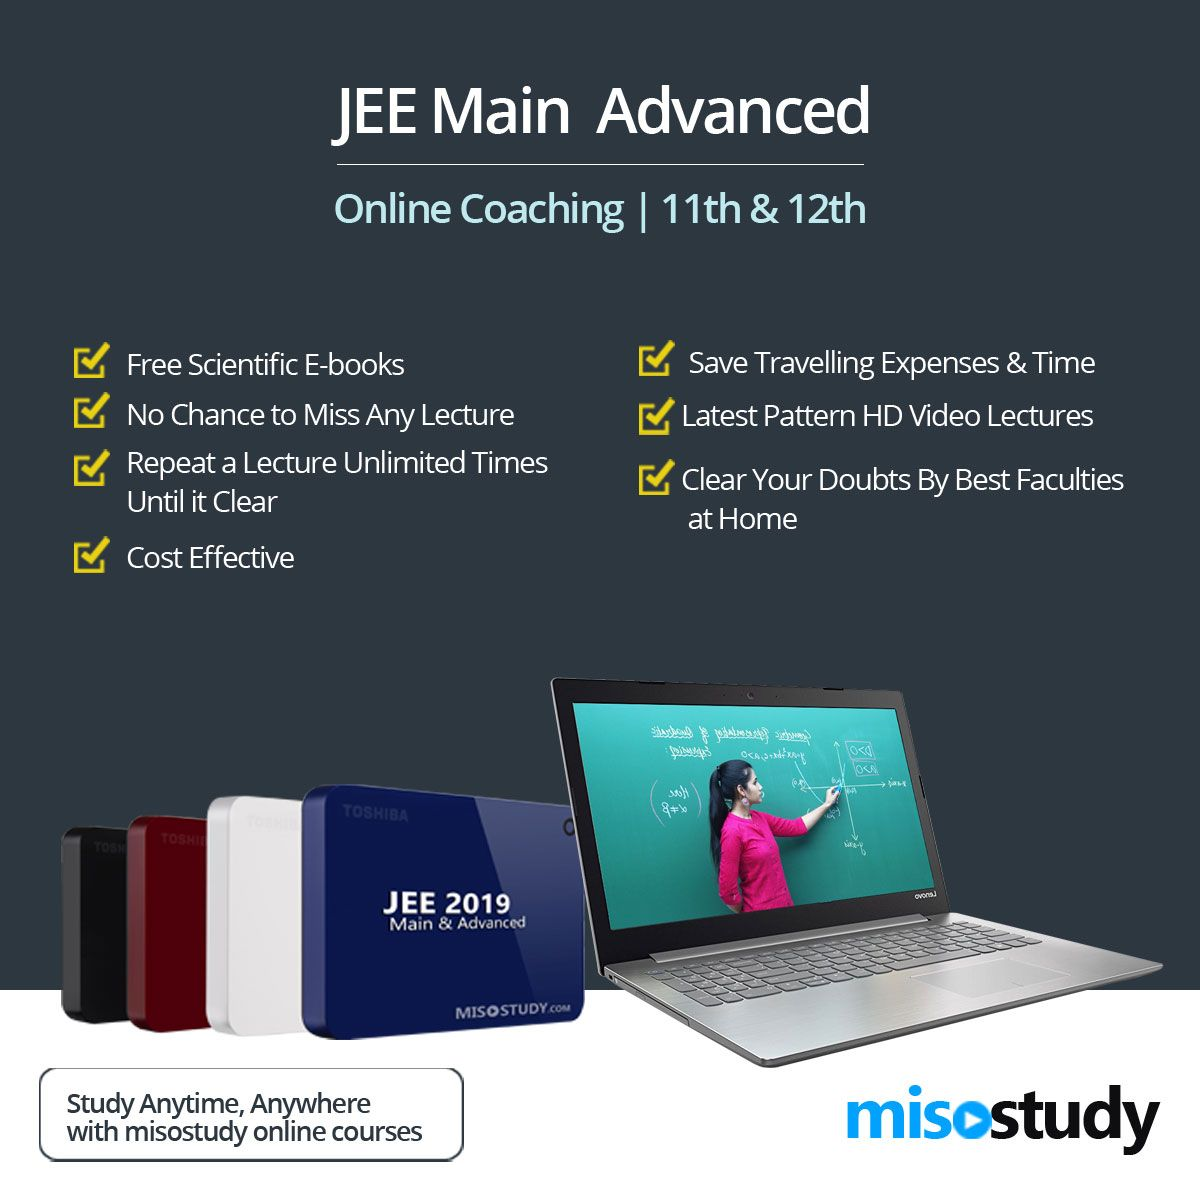 JEE Advanced Online Coaching | IIT- JEE Main / Advanced